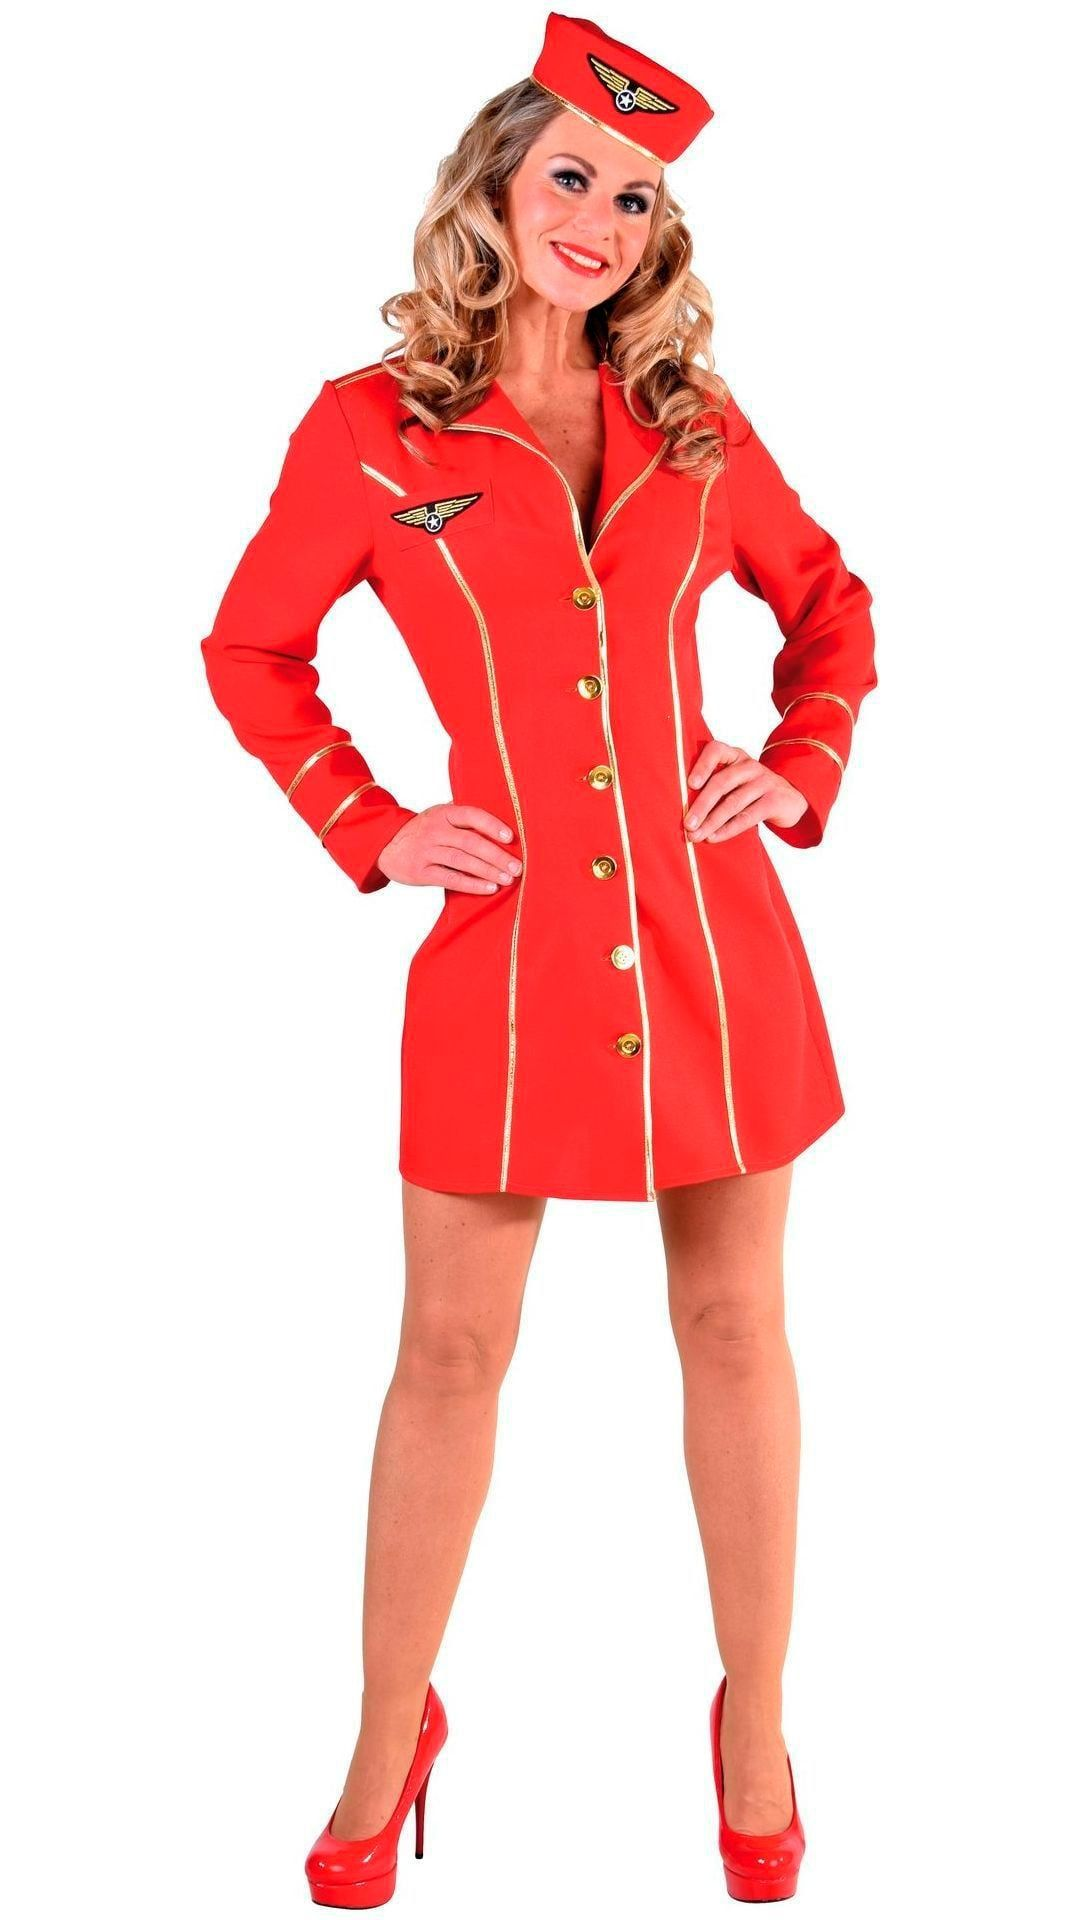 Stewardess outfit vrouwen rood